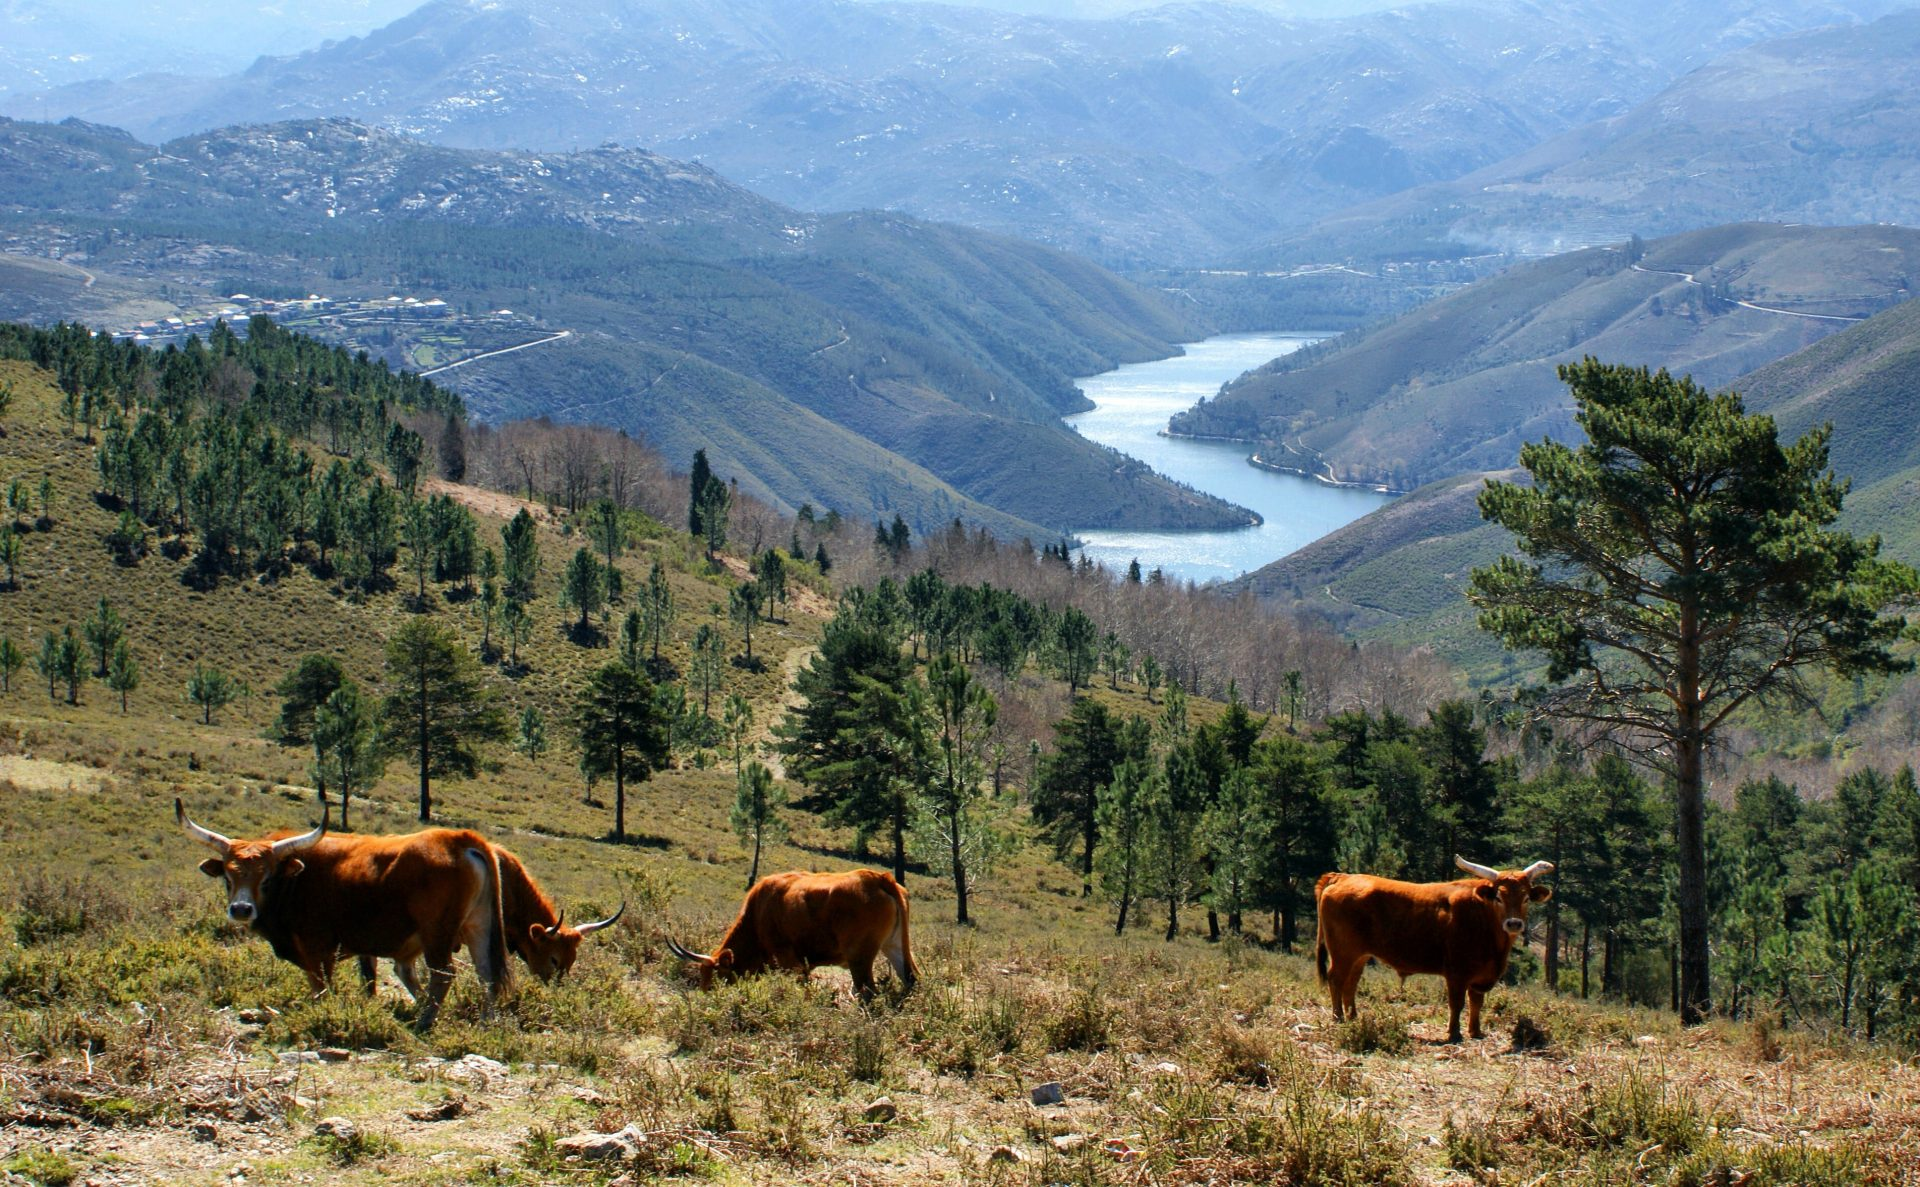 You could be a cattle rancher in Portugal, says National Park